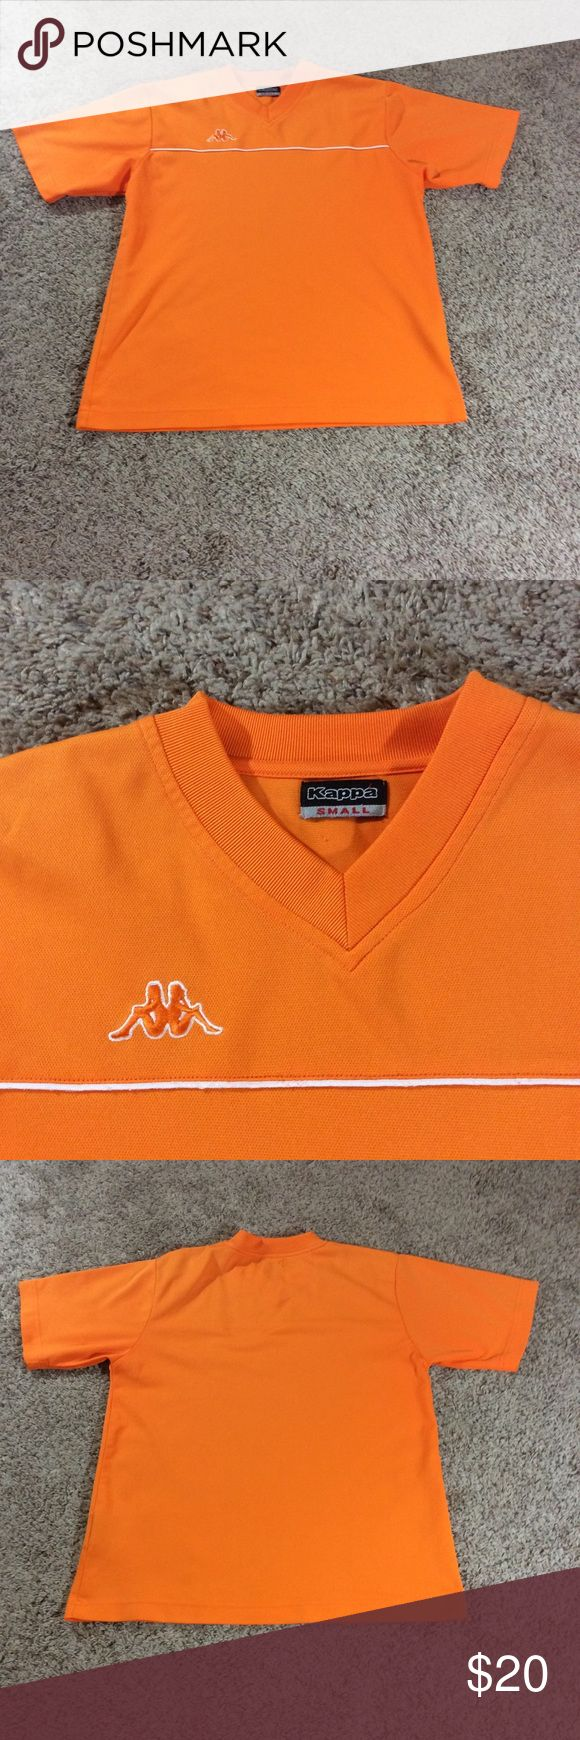 """Kylie Jenner kappa unisex jersey Unisex Kappa Soccer Jersey. Orange. Size small. Approx Measurements Laying Flat: Pit to Pit 19"""" Top of Shoulder to Bottom Hem 25"""" Excellent used condition with no flaws. kappa Tops"""